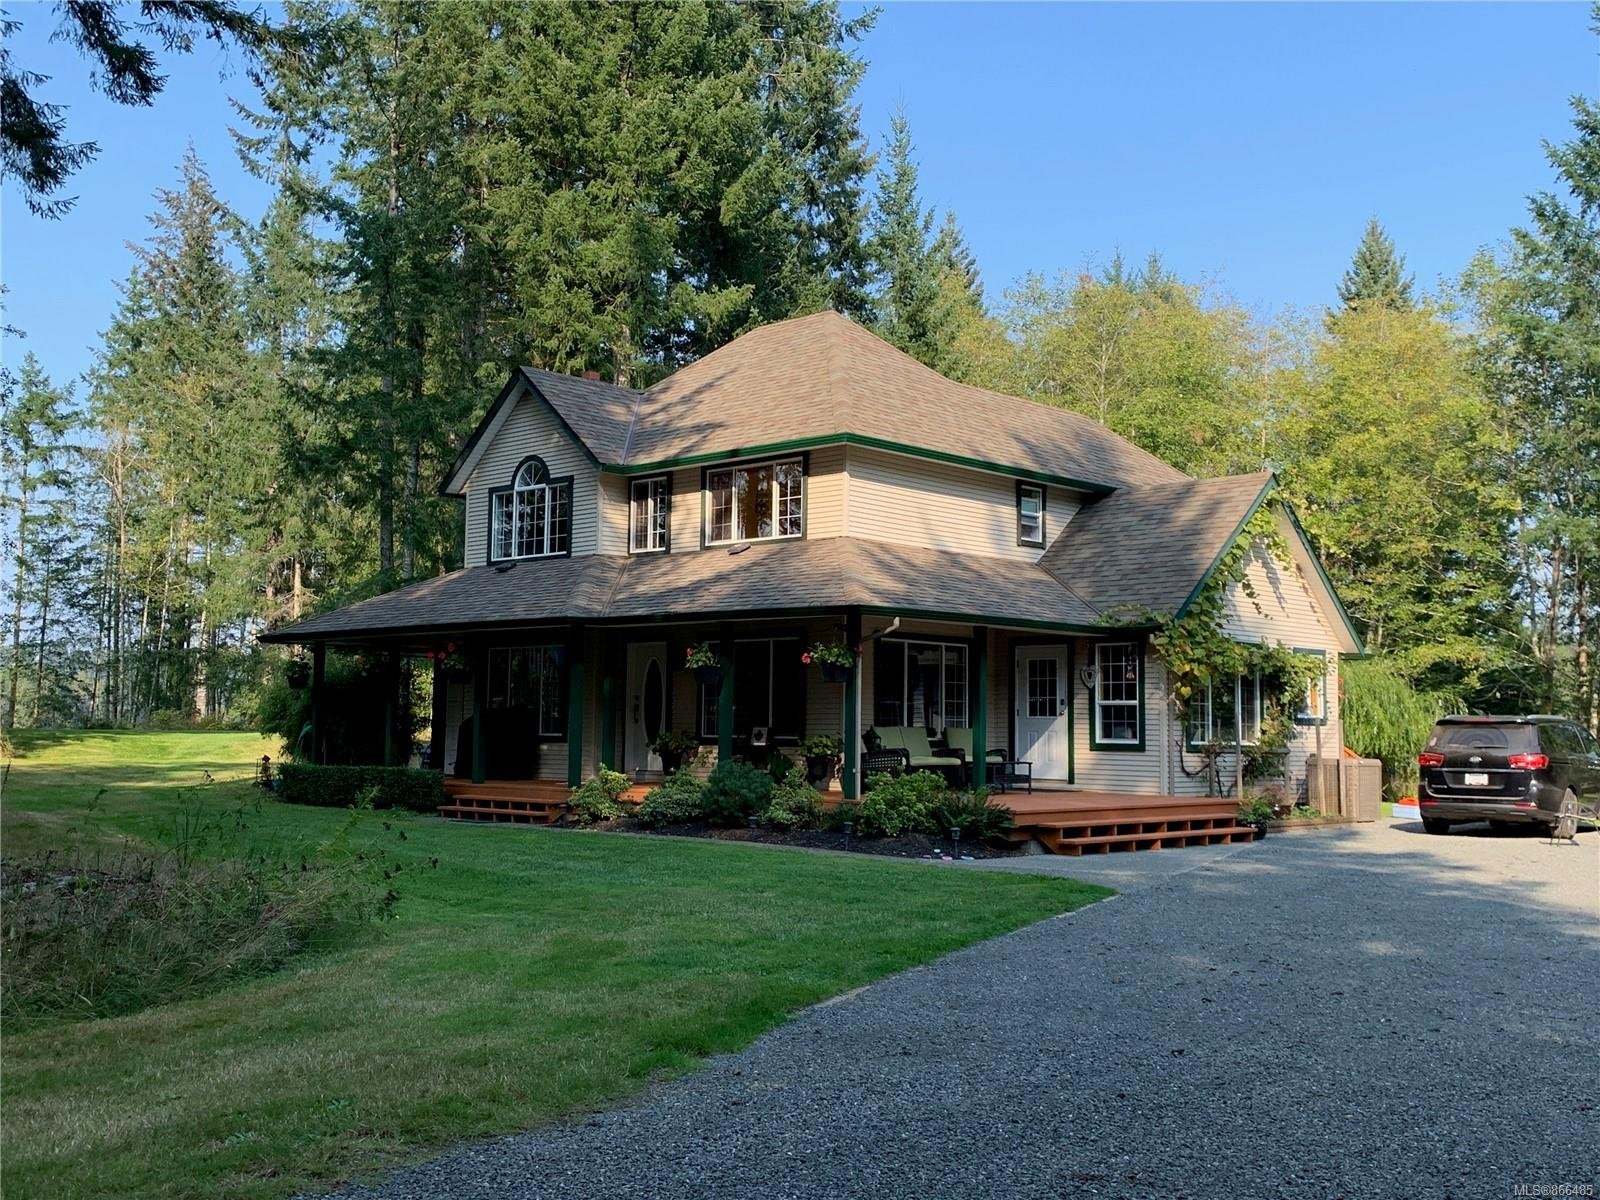 7006 Sprout Road, Merville Black Creek, Comox Valley photo 0